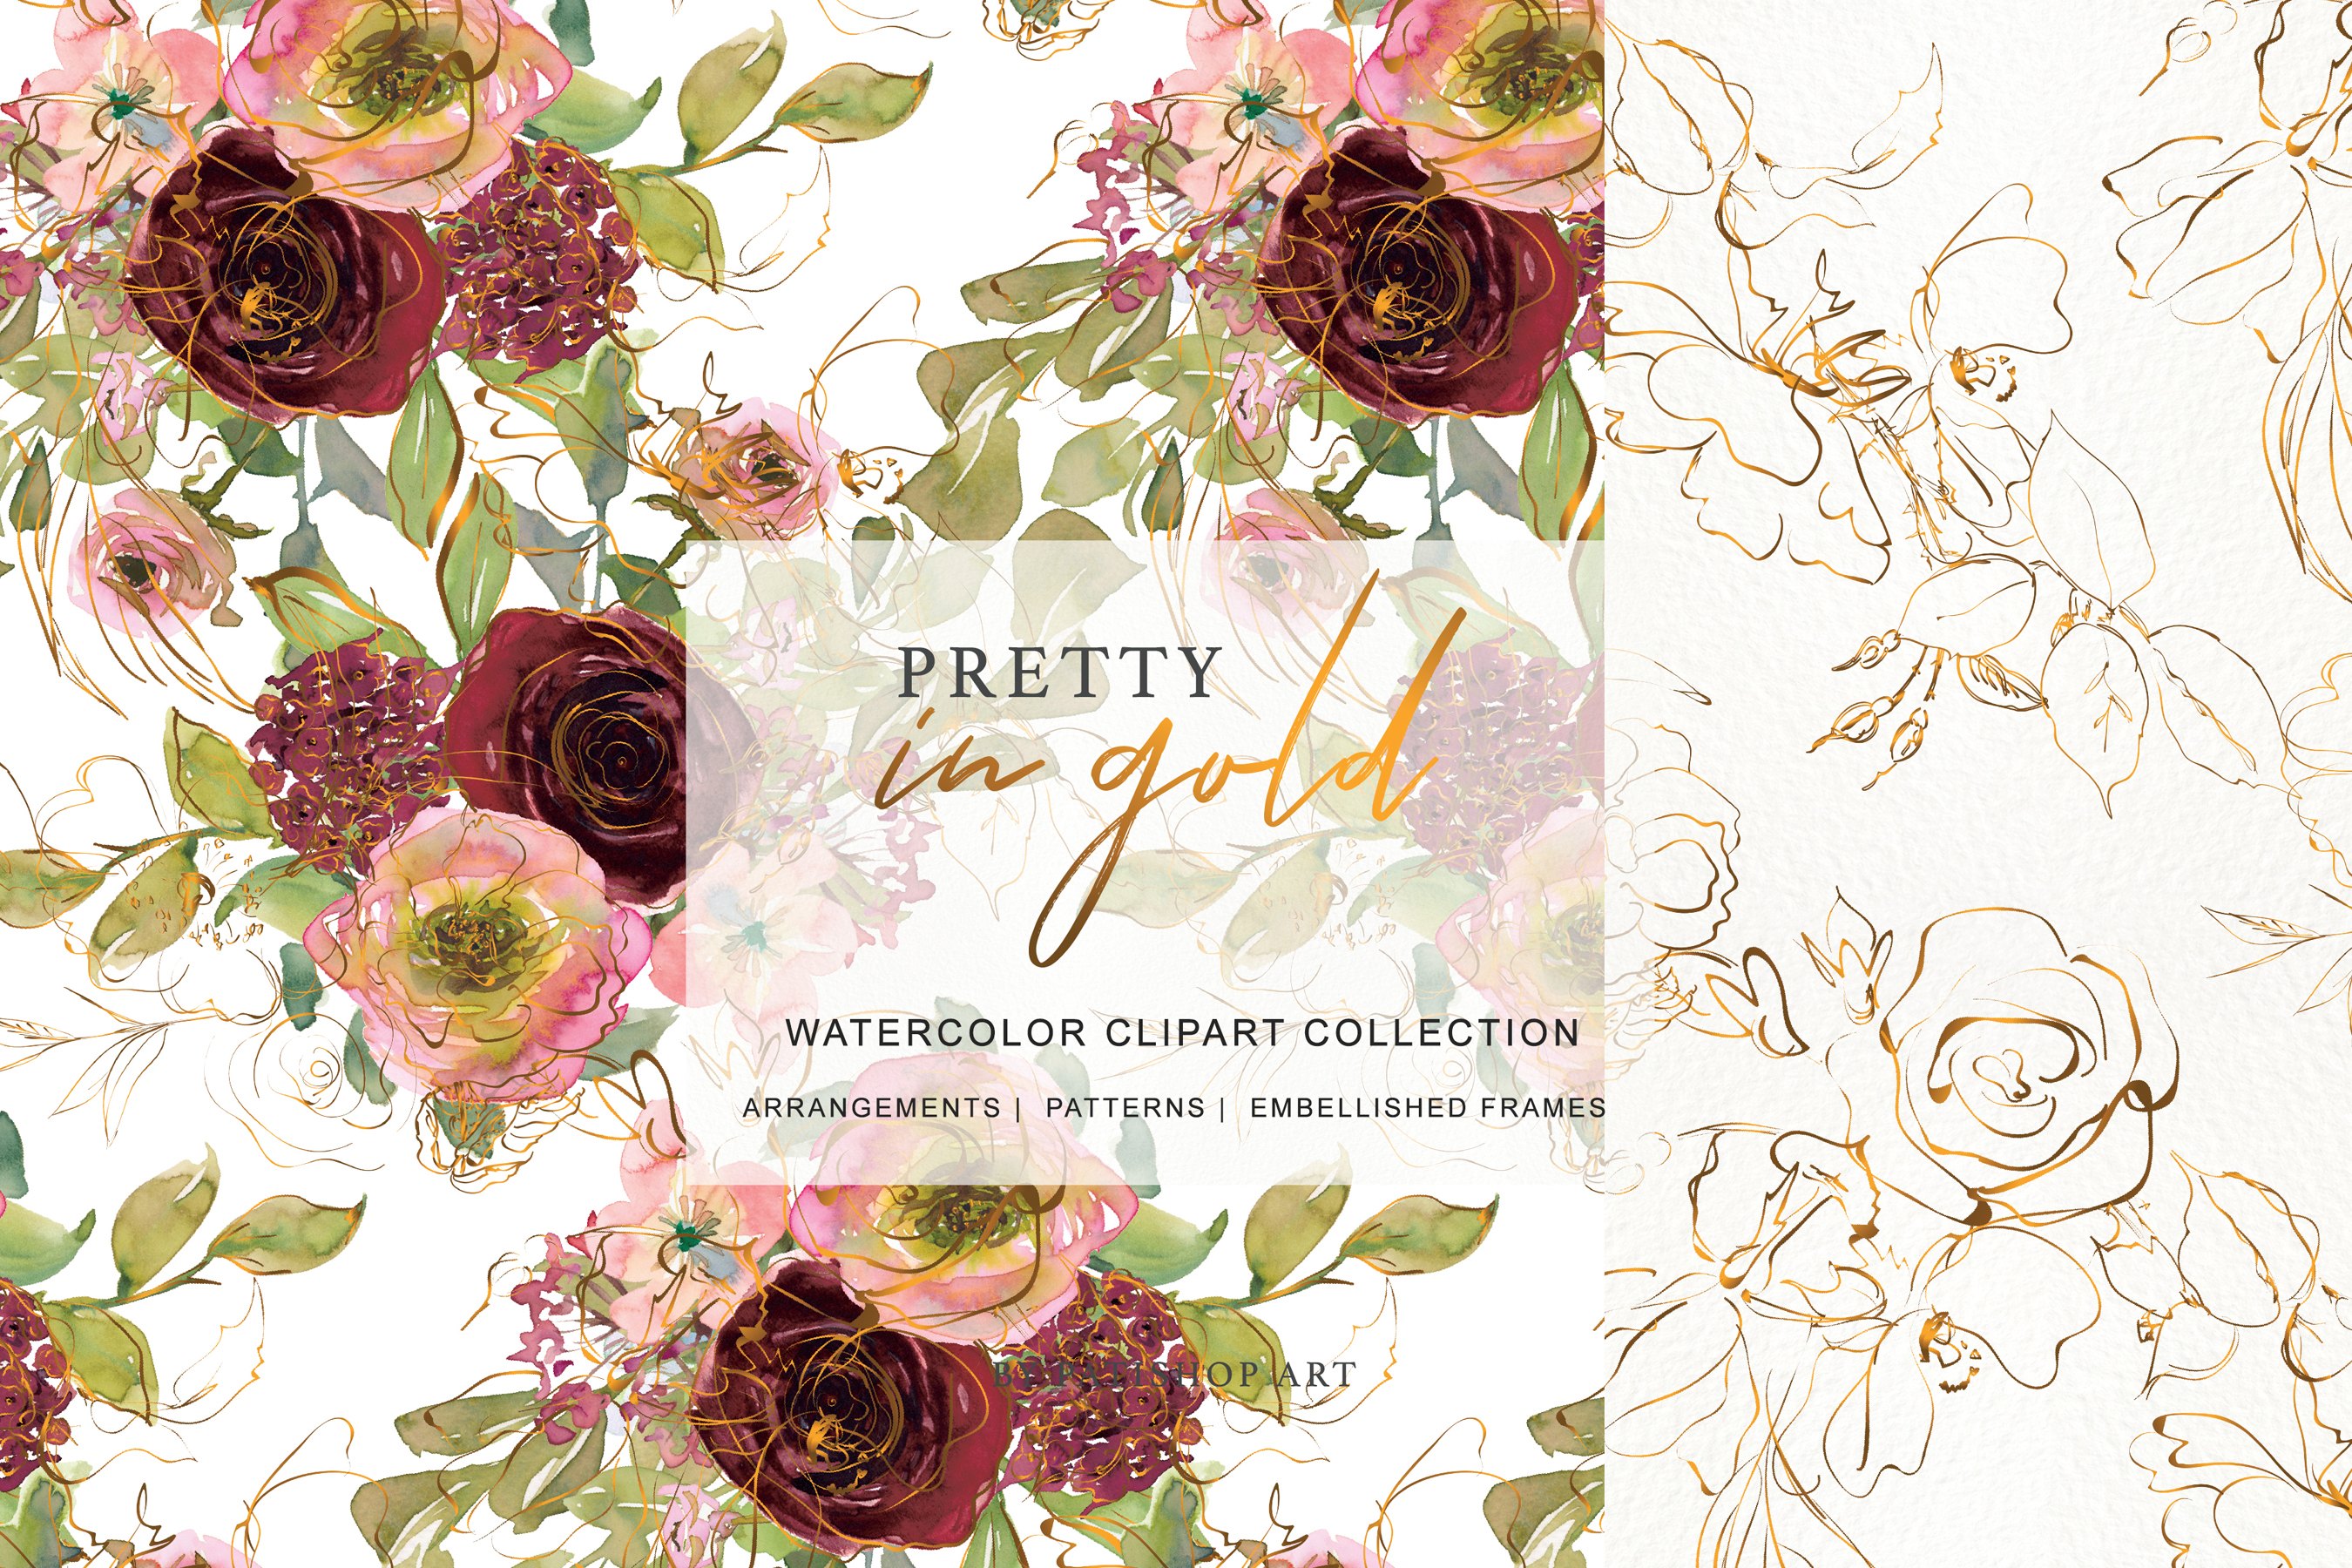 Watercolor Burgundy Blush and Gold Floral Bouquet Clipart example image 4